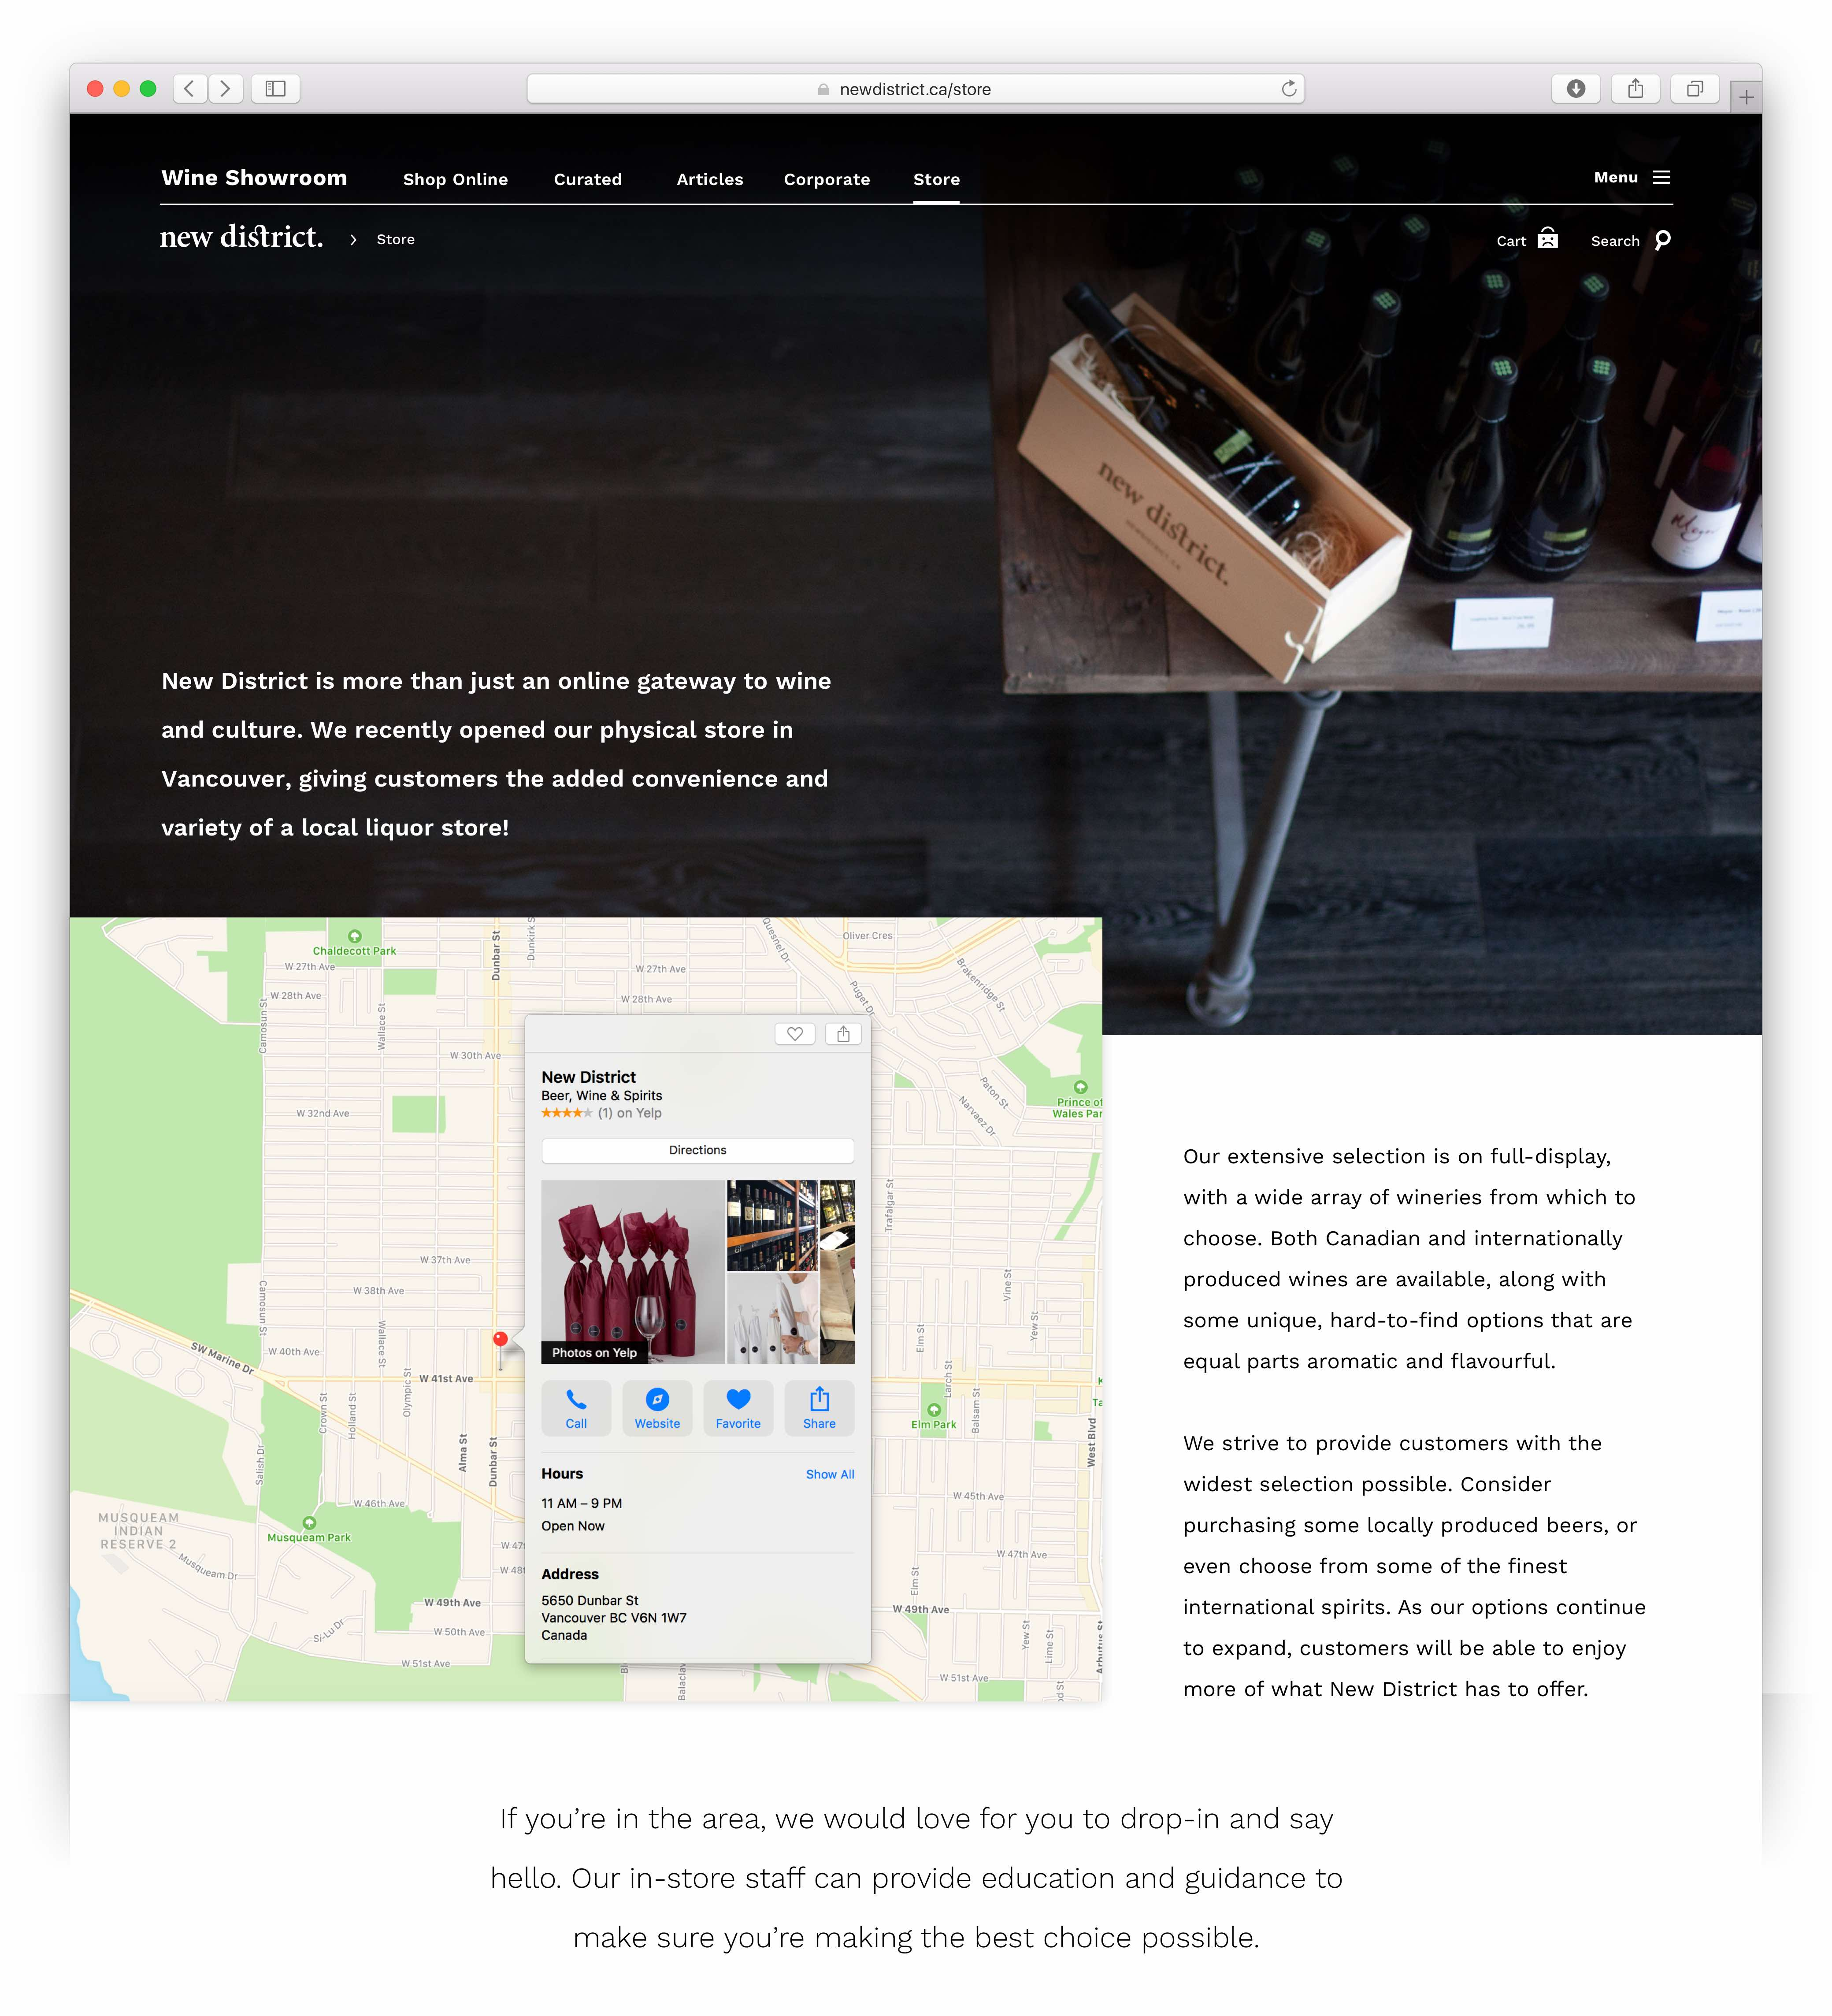 User interface of the about the store page showcase interior photography of the New District wine shop, its location map and details — by Yagnyuk.